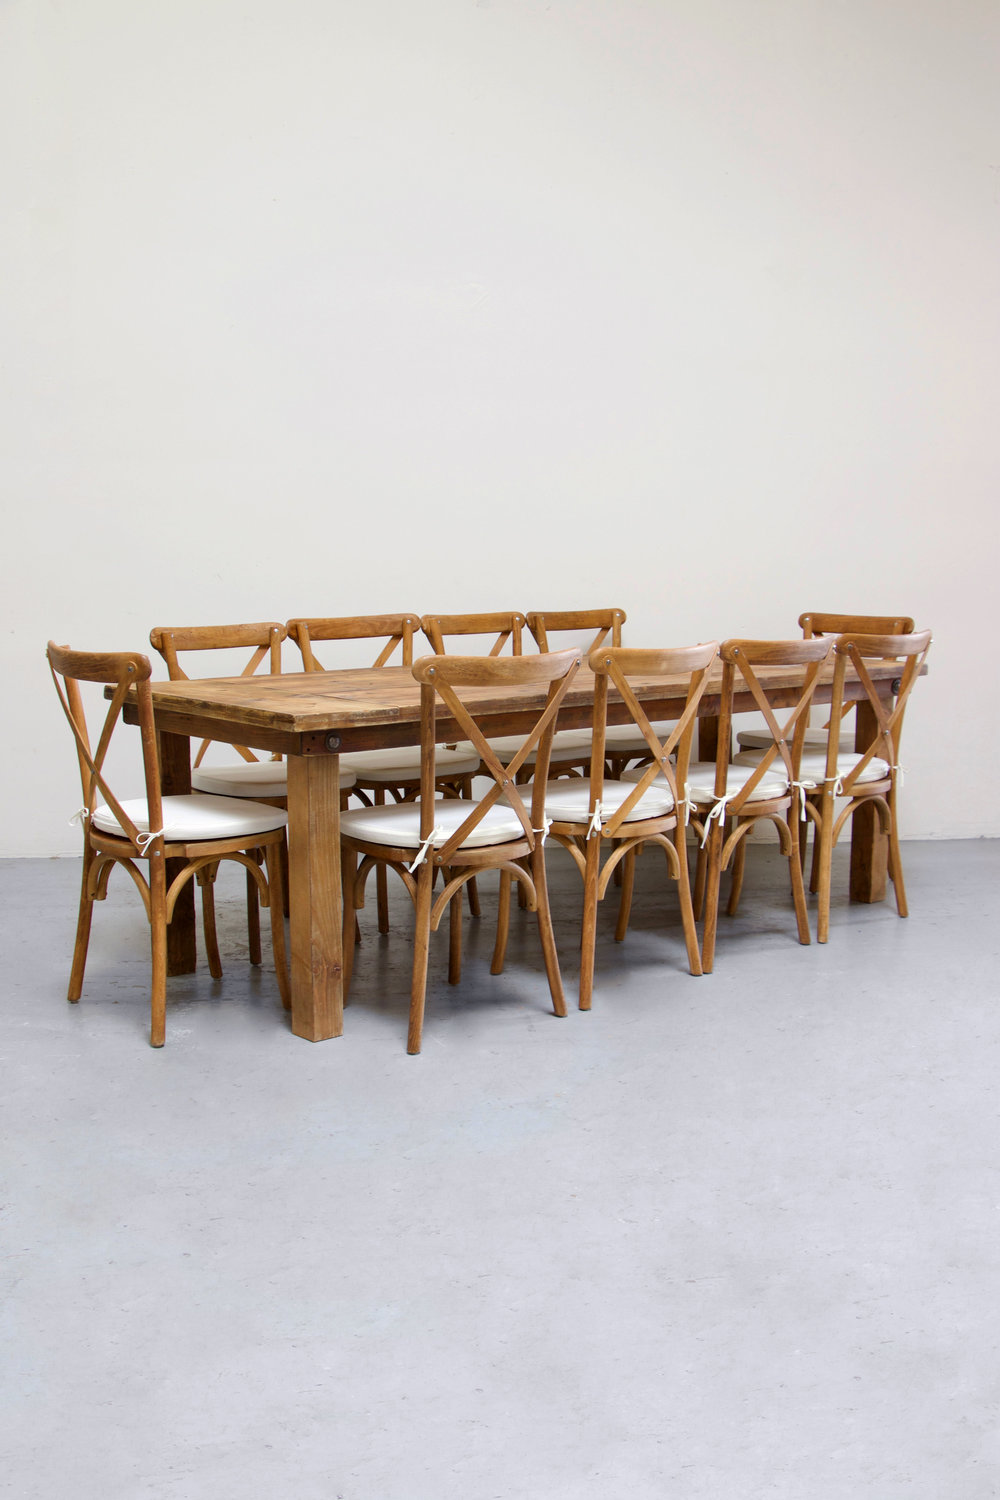 $160 1 Honey Brown Farm Table w/ 10 Cross-Back Chairs